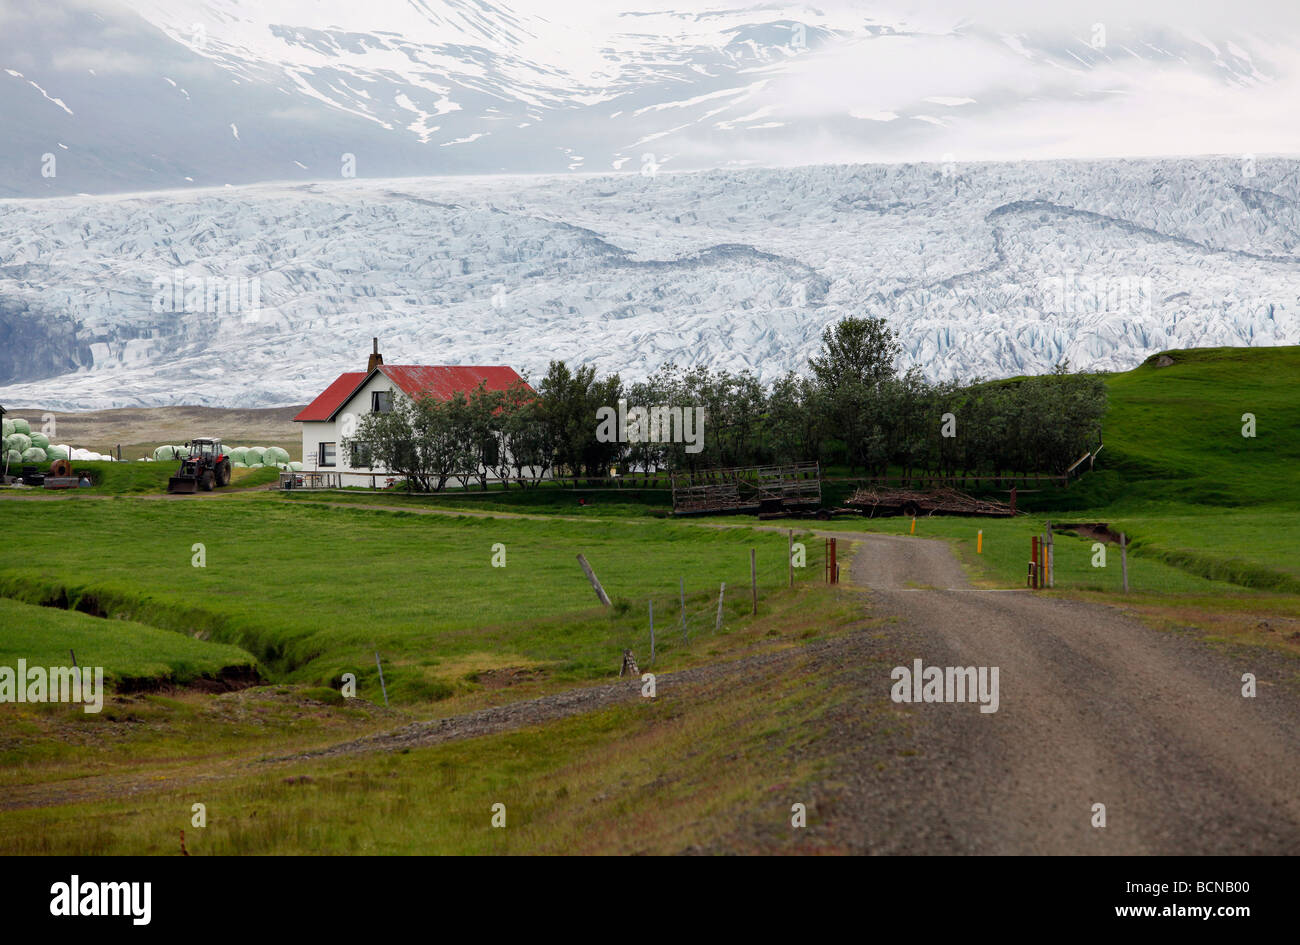 A farmhouse at the foot of Skálafellsjökull, glacier in southeast Iceland. - Stock Image